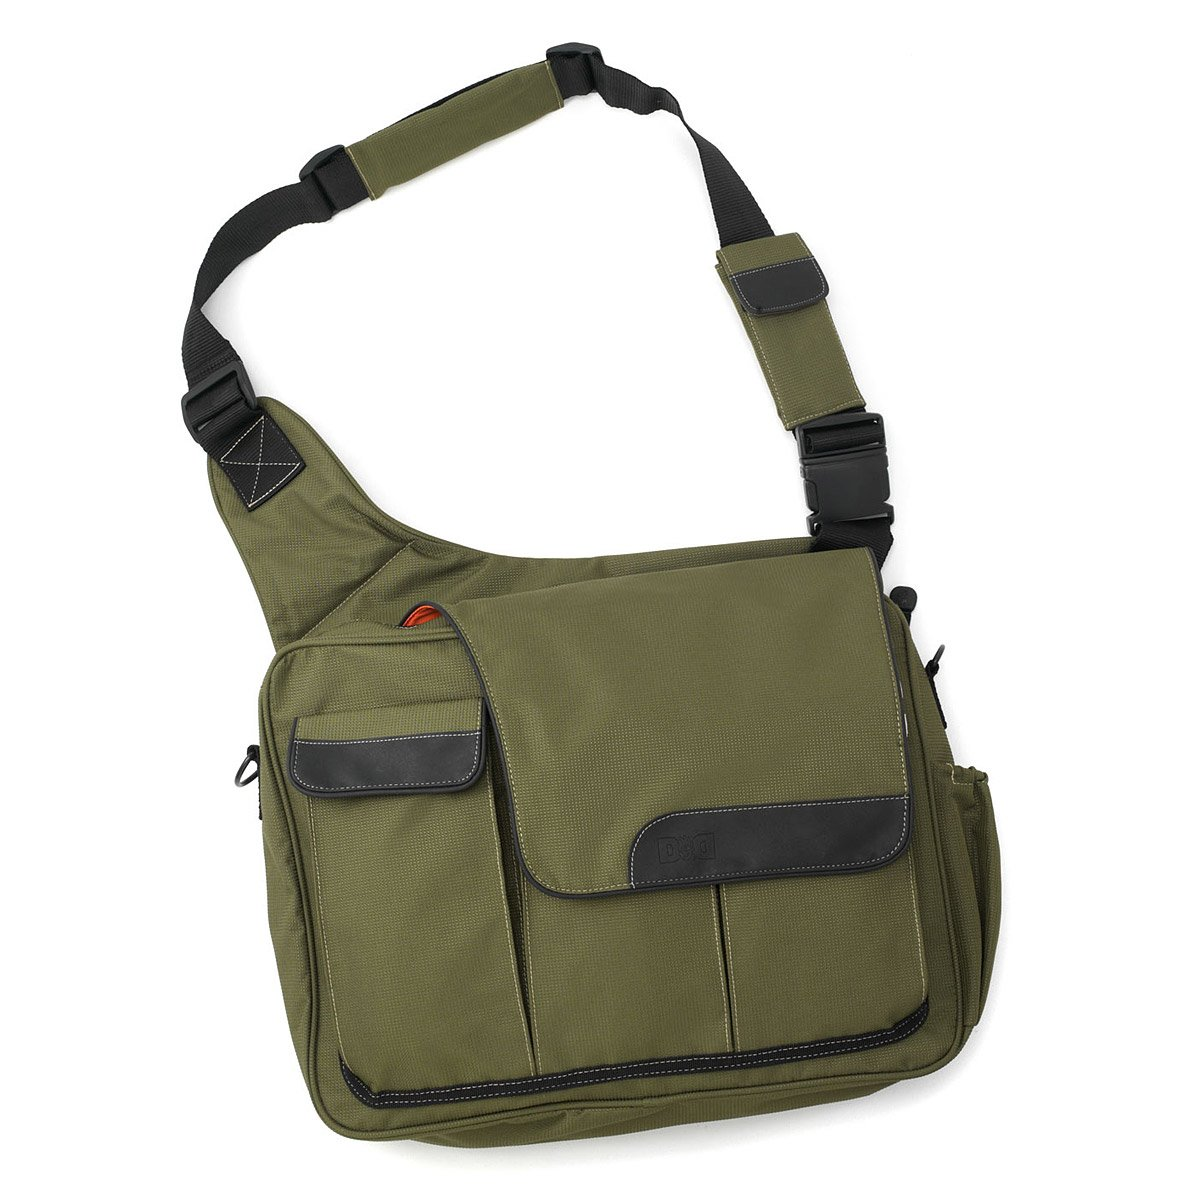 Stunning Dads Singapore Dads Moms Diaper Bags Recycled Diaper Dude Bag Thumbnail Recycled Diaper Dude Bag Dad Messenger Bag Diaper Bags baby Diaper Bags For Dads